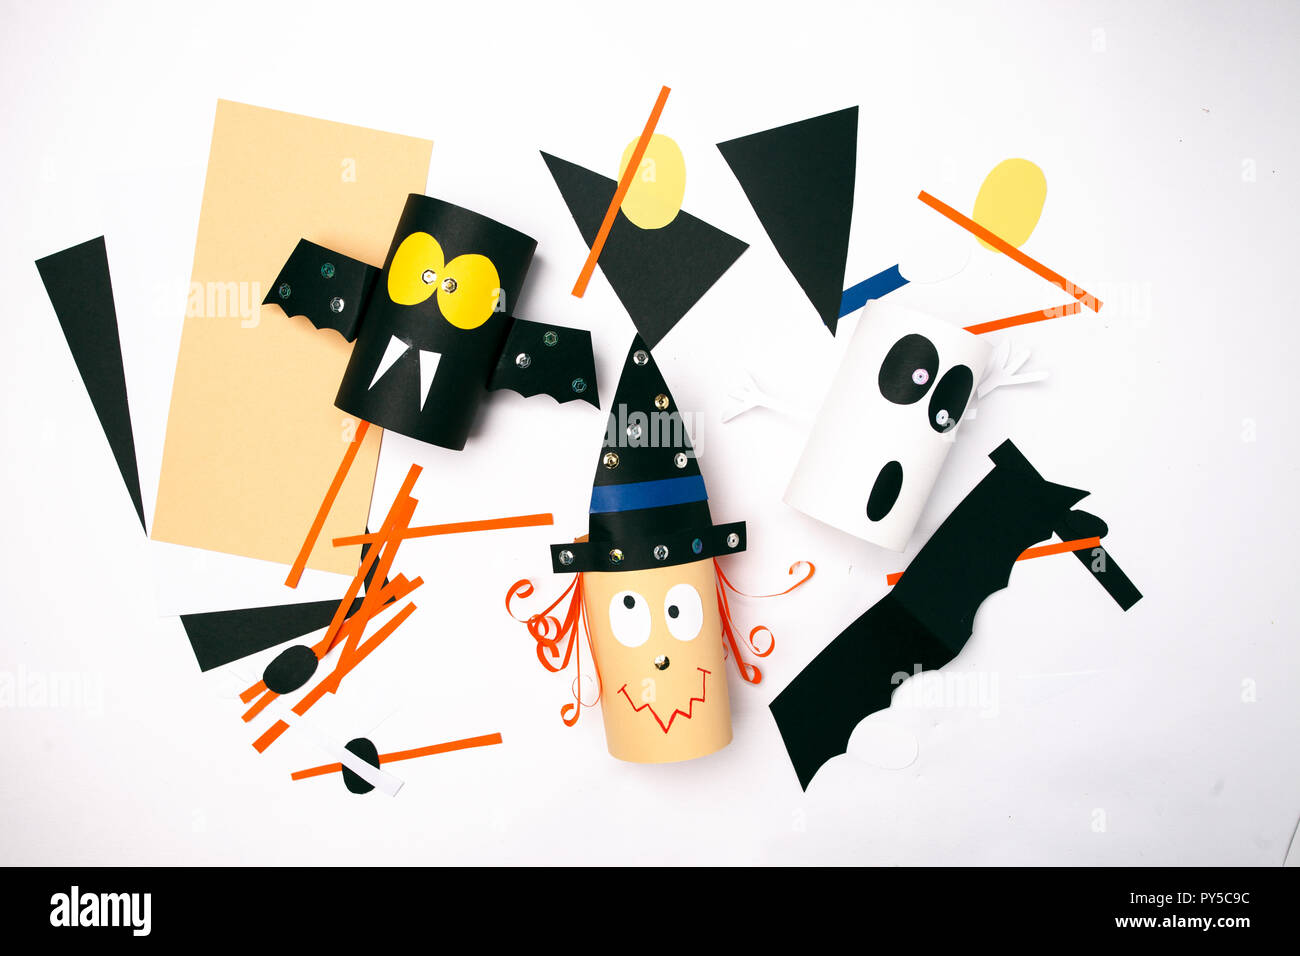 Halloween Witch Ghost Bat From Paper On White Background Creative Diy For Kids Home Decor Idea For Party Work In Progress Stock Photo Alamy